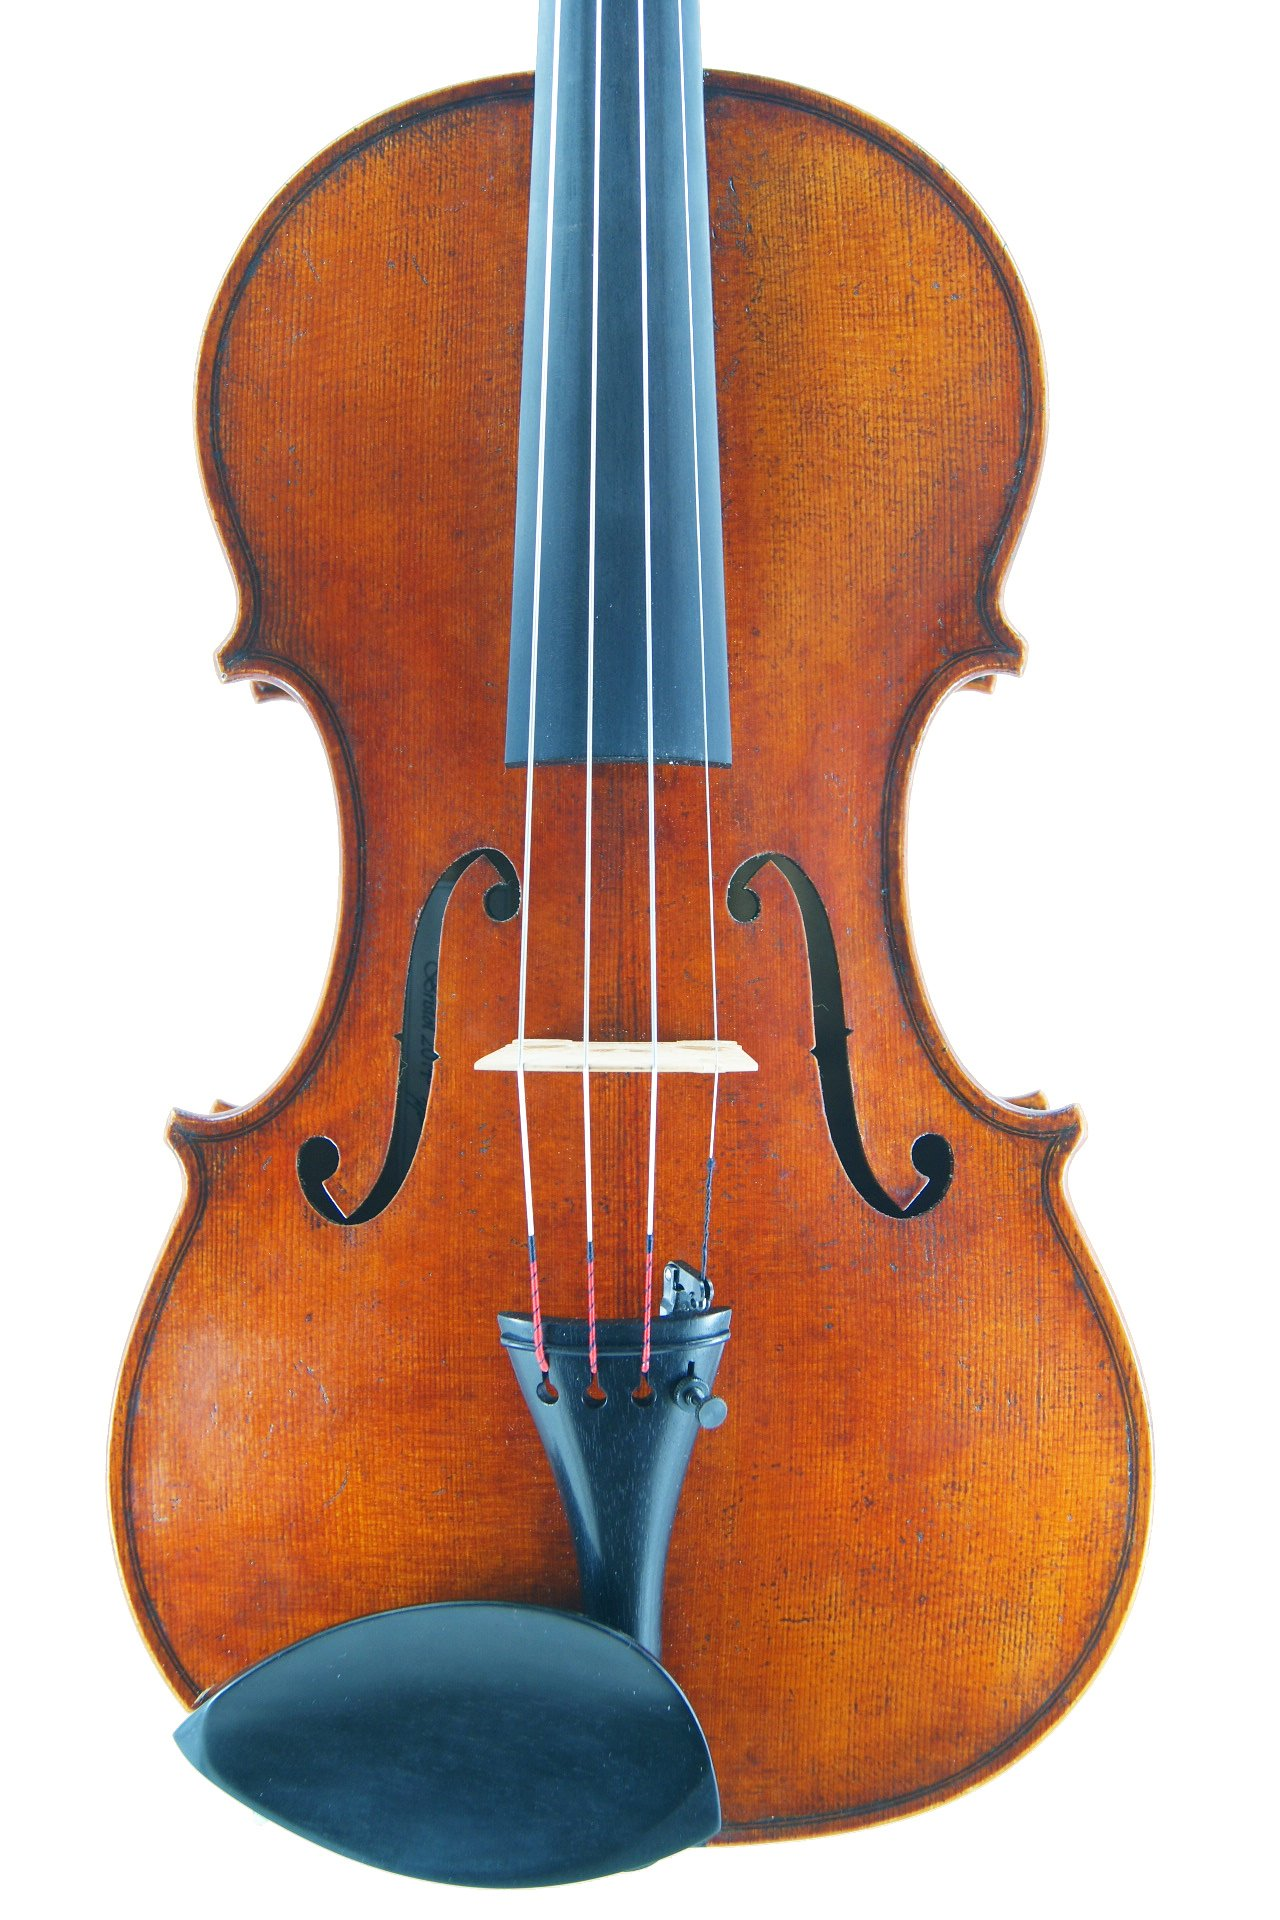 front of new violin modelled on Guarneri Del Gesu